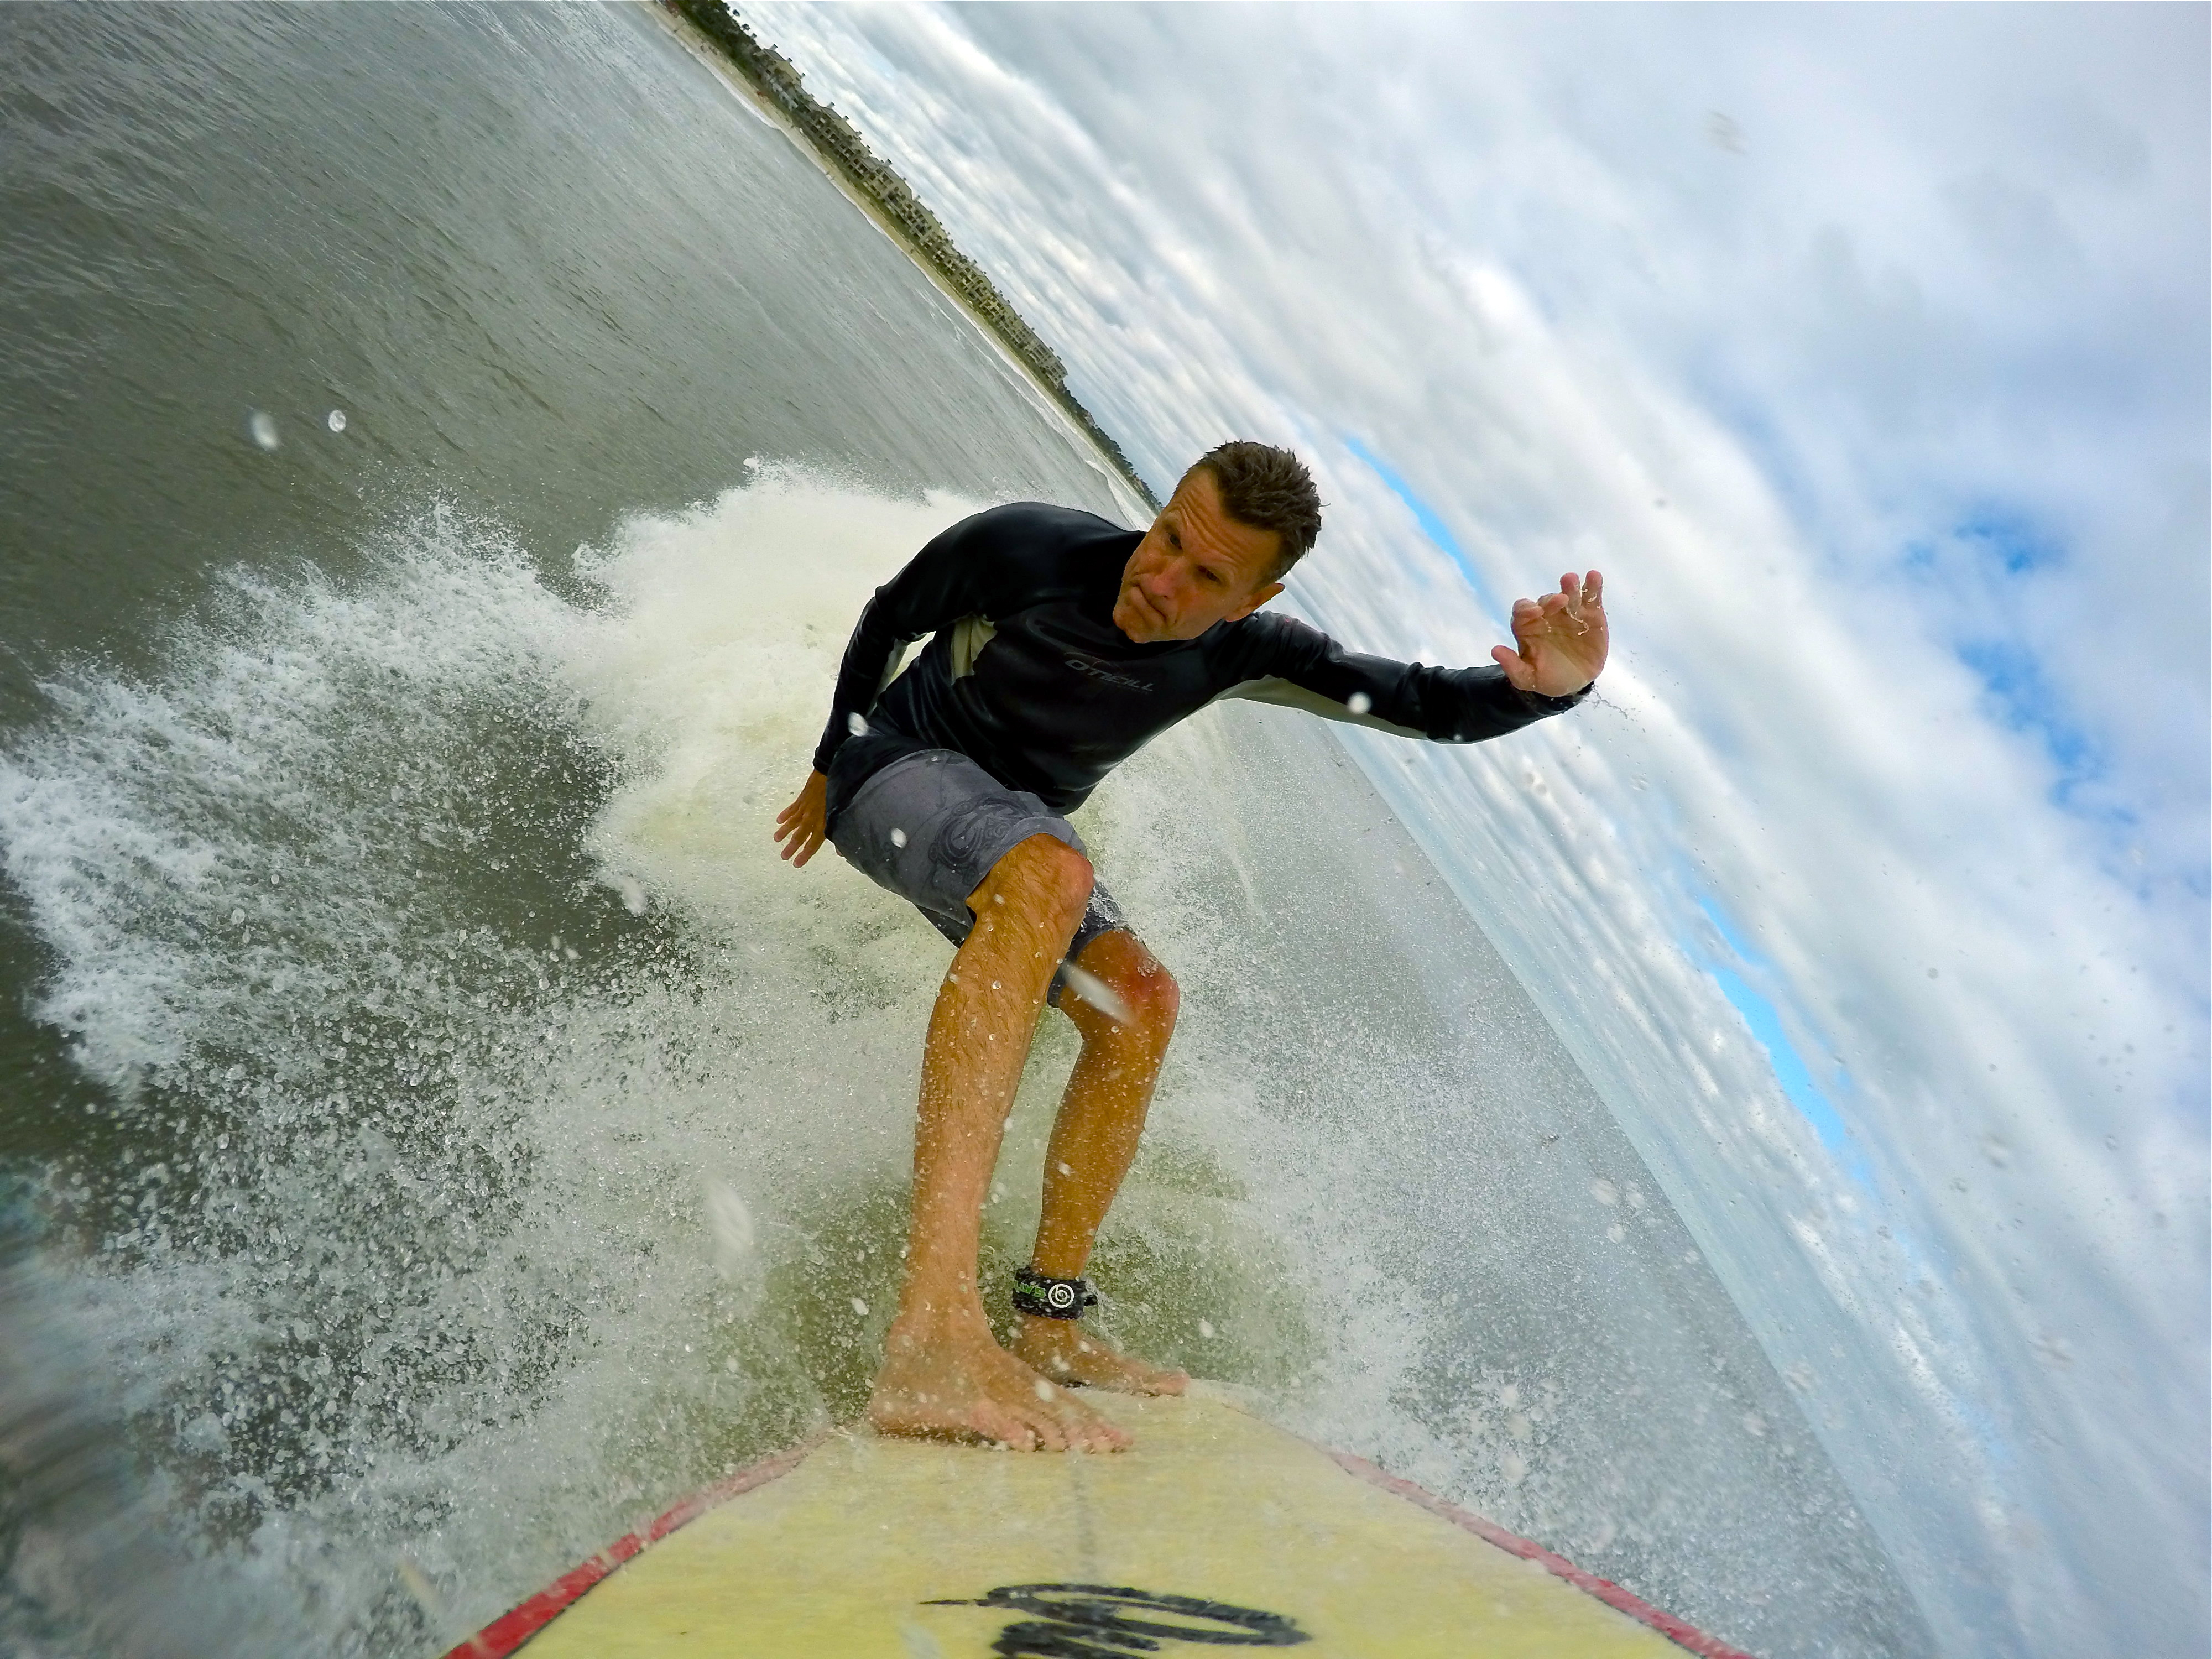 surfing in Hurricane Joaquin in Ponte Vedra Beach, FL October, 2015